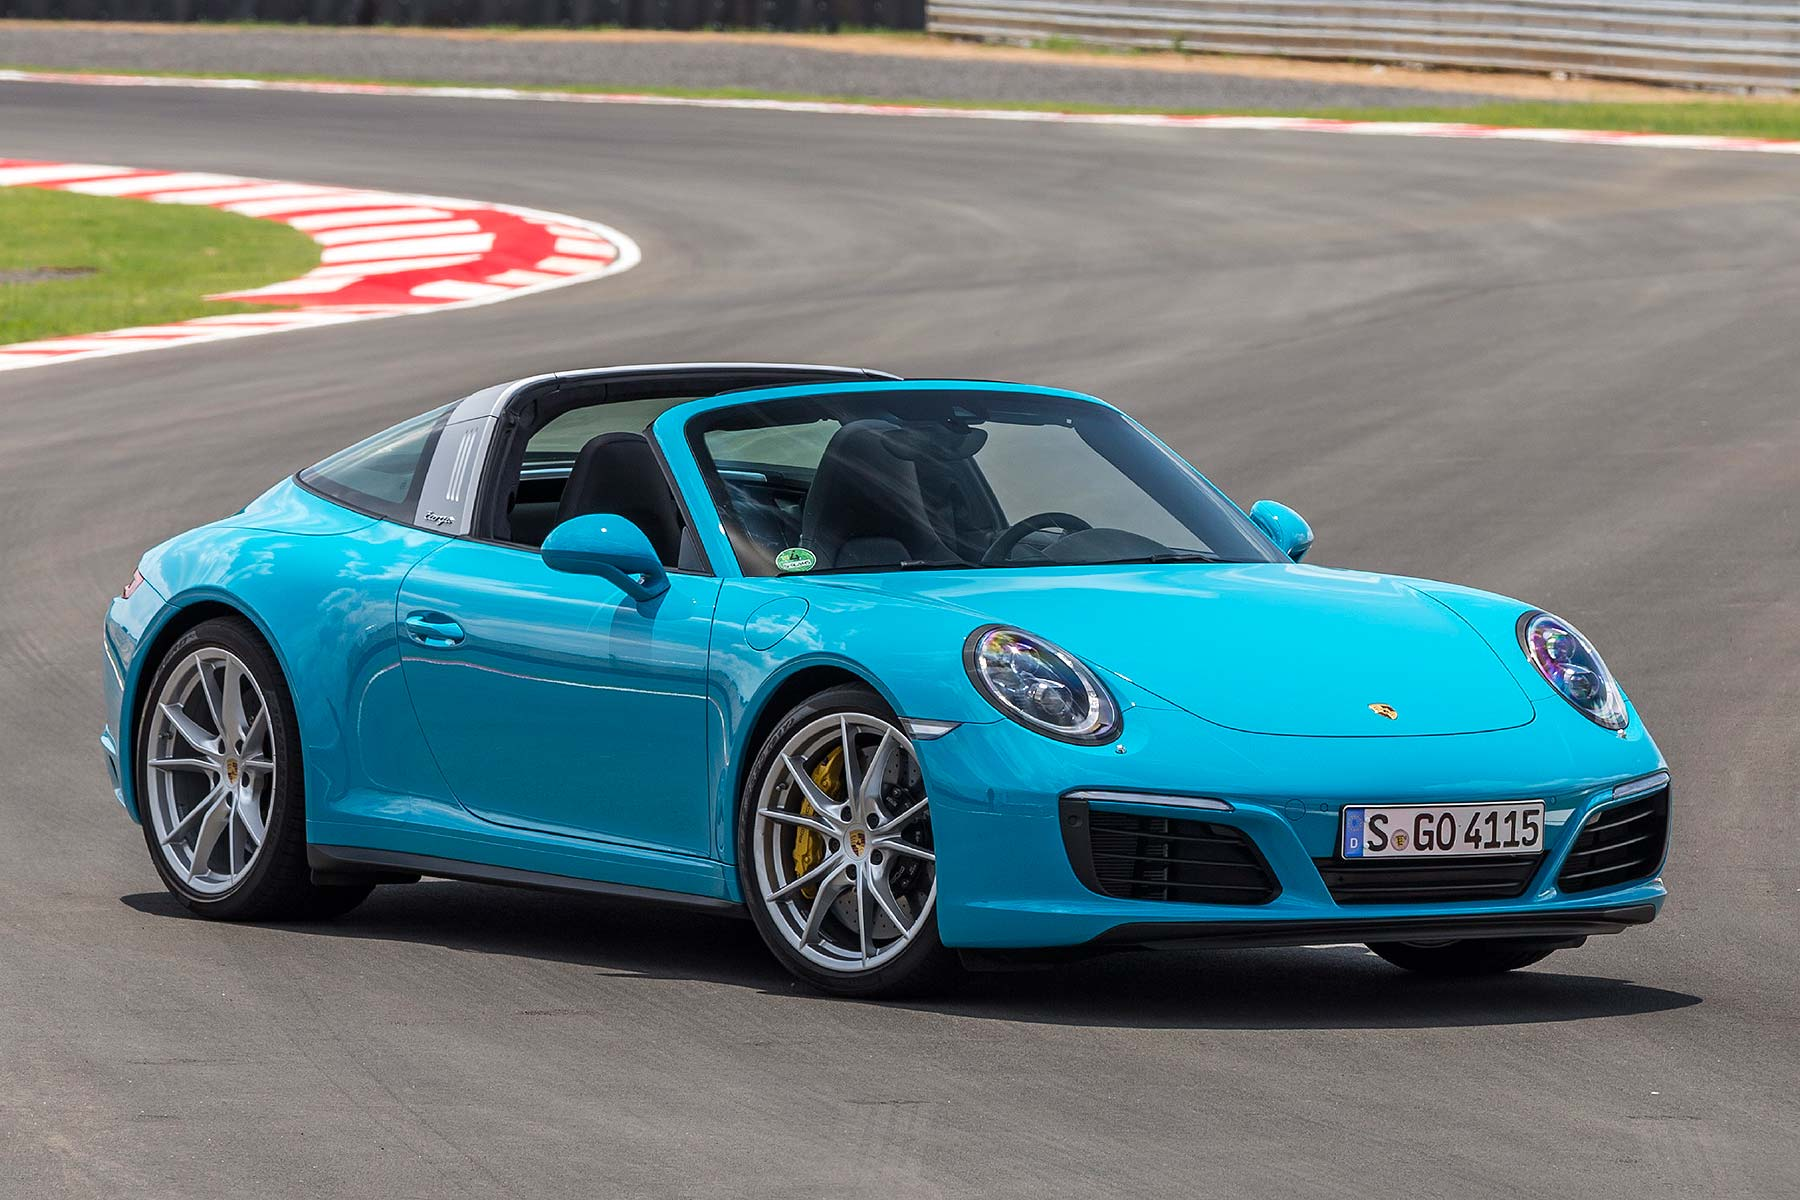 2016 Porsche 911 Targa 4s Review First Drive Motoring